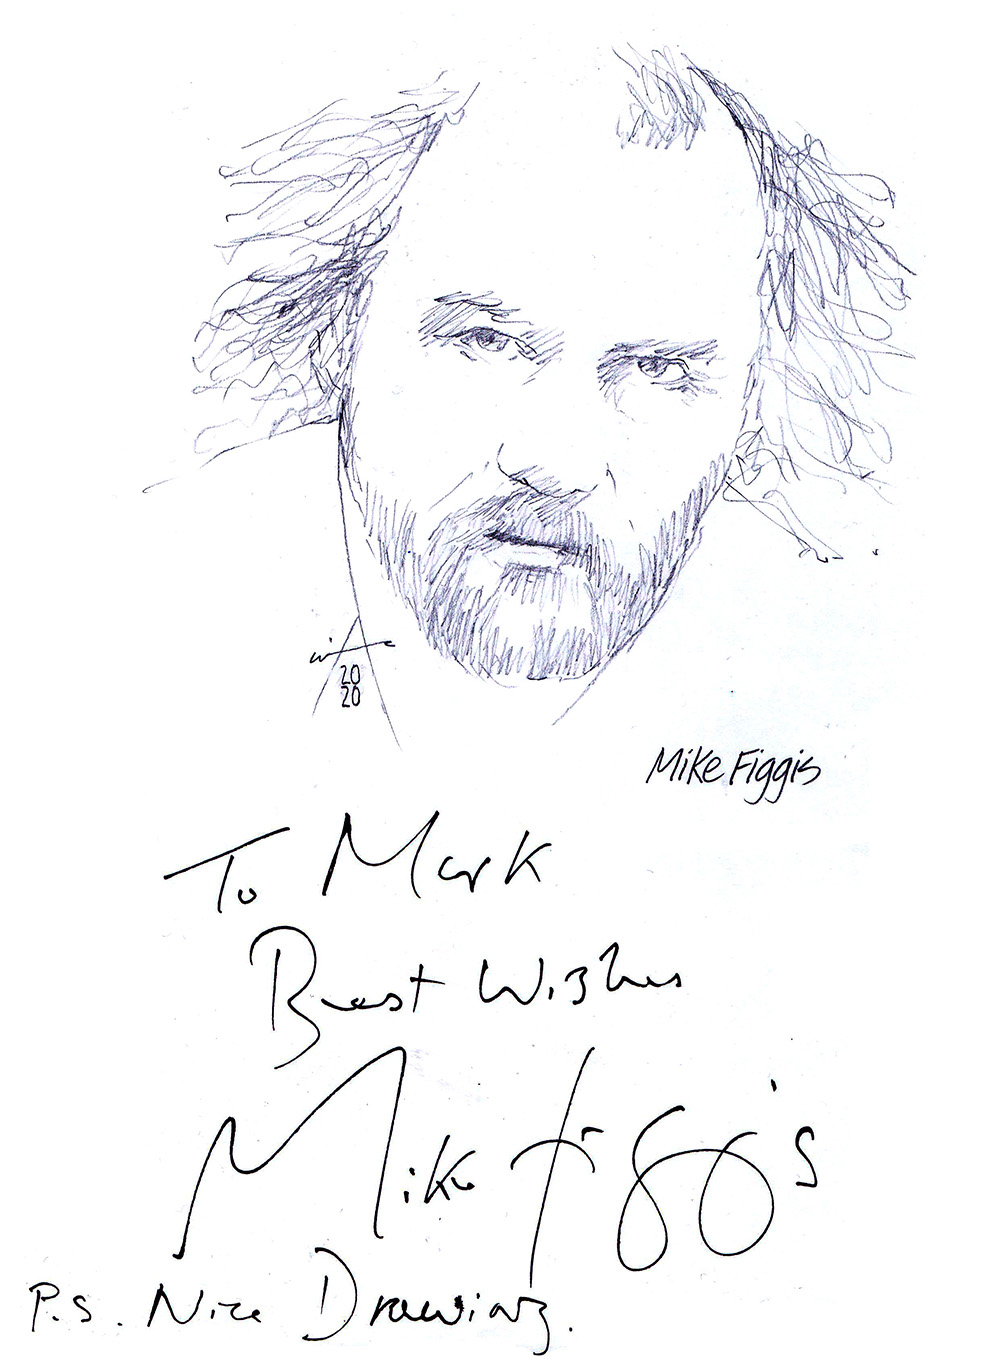 Autographed drawing of filmmaker Mike Figgis